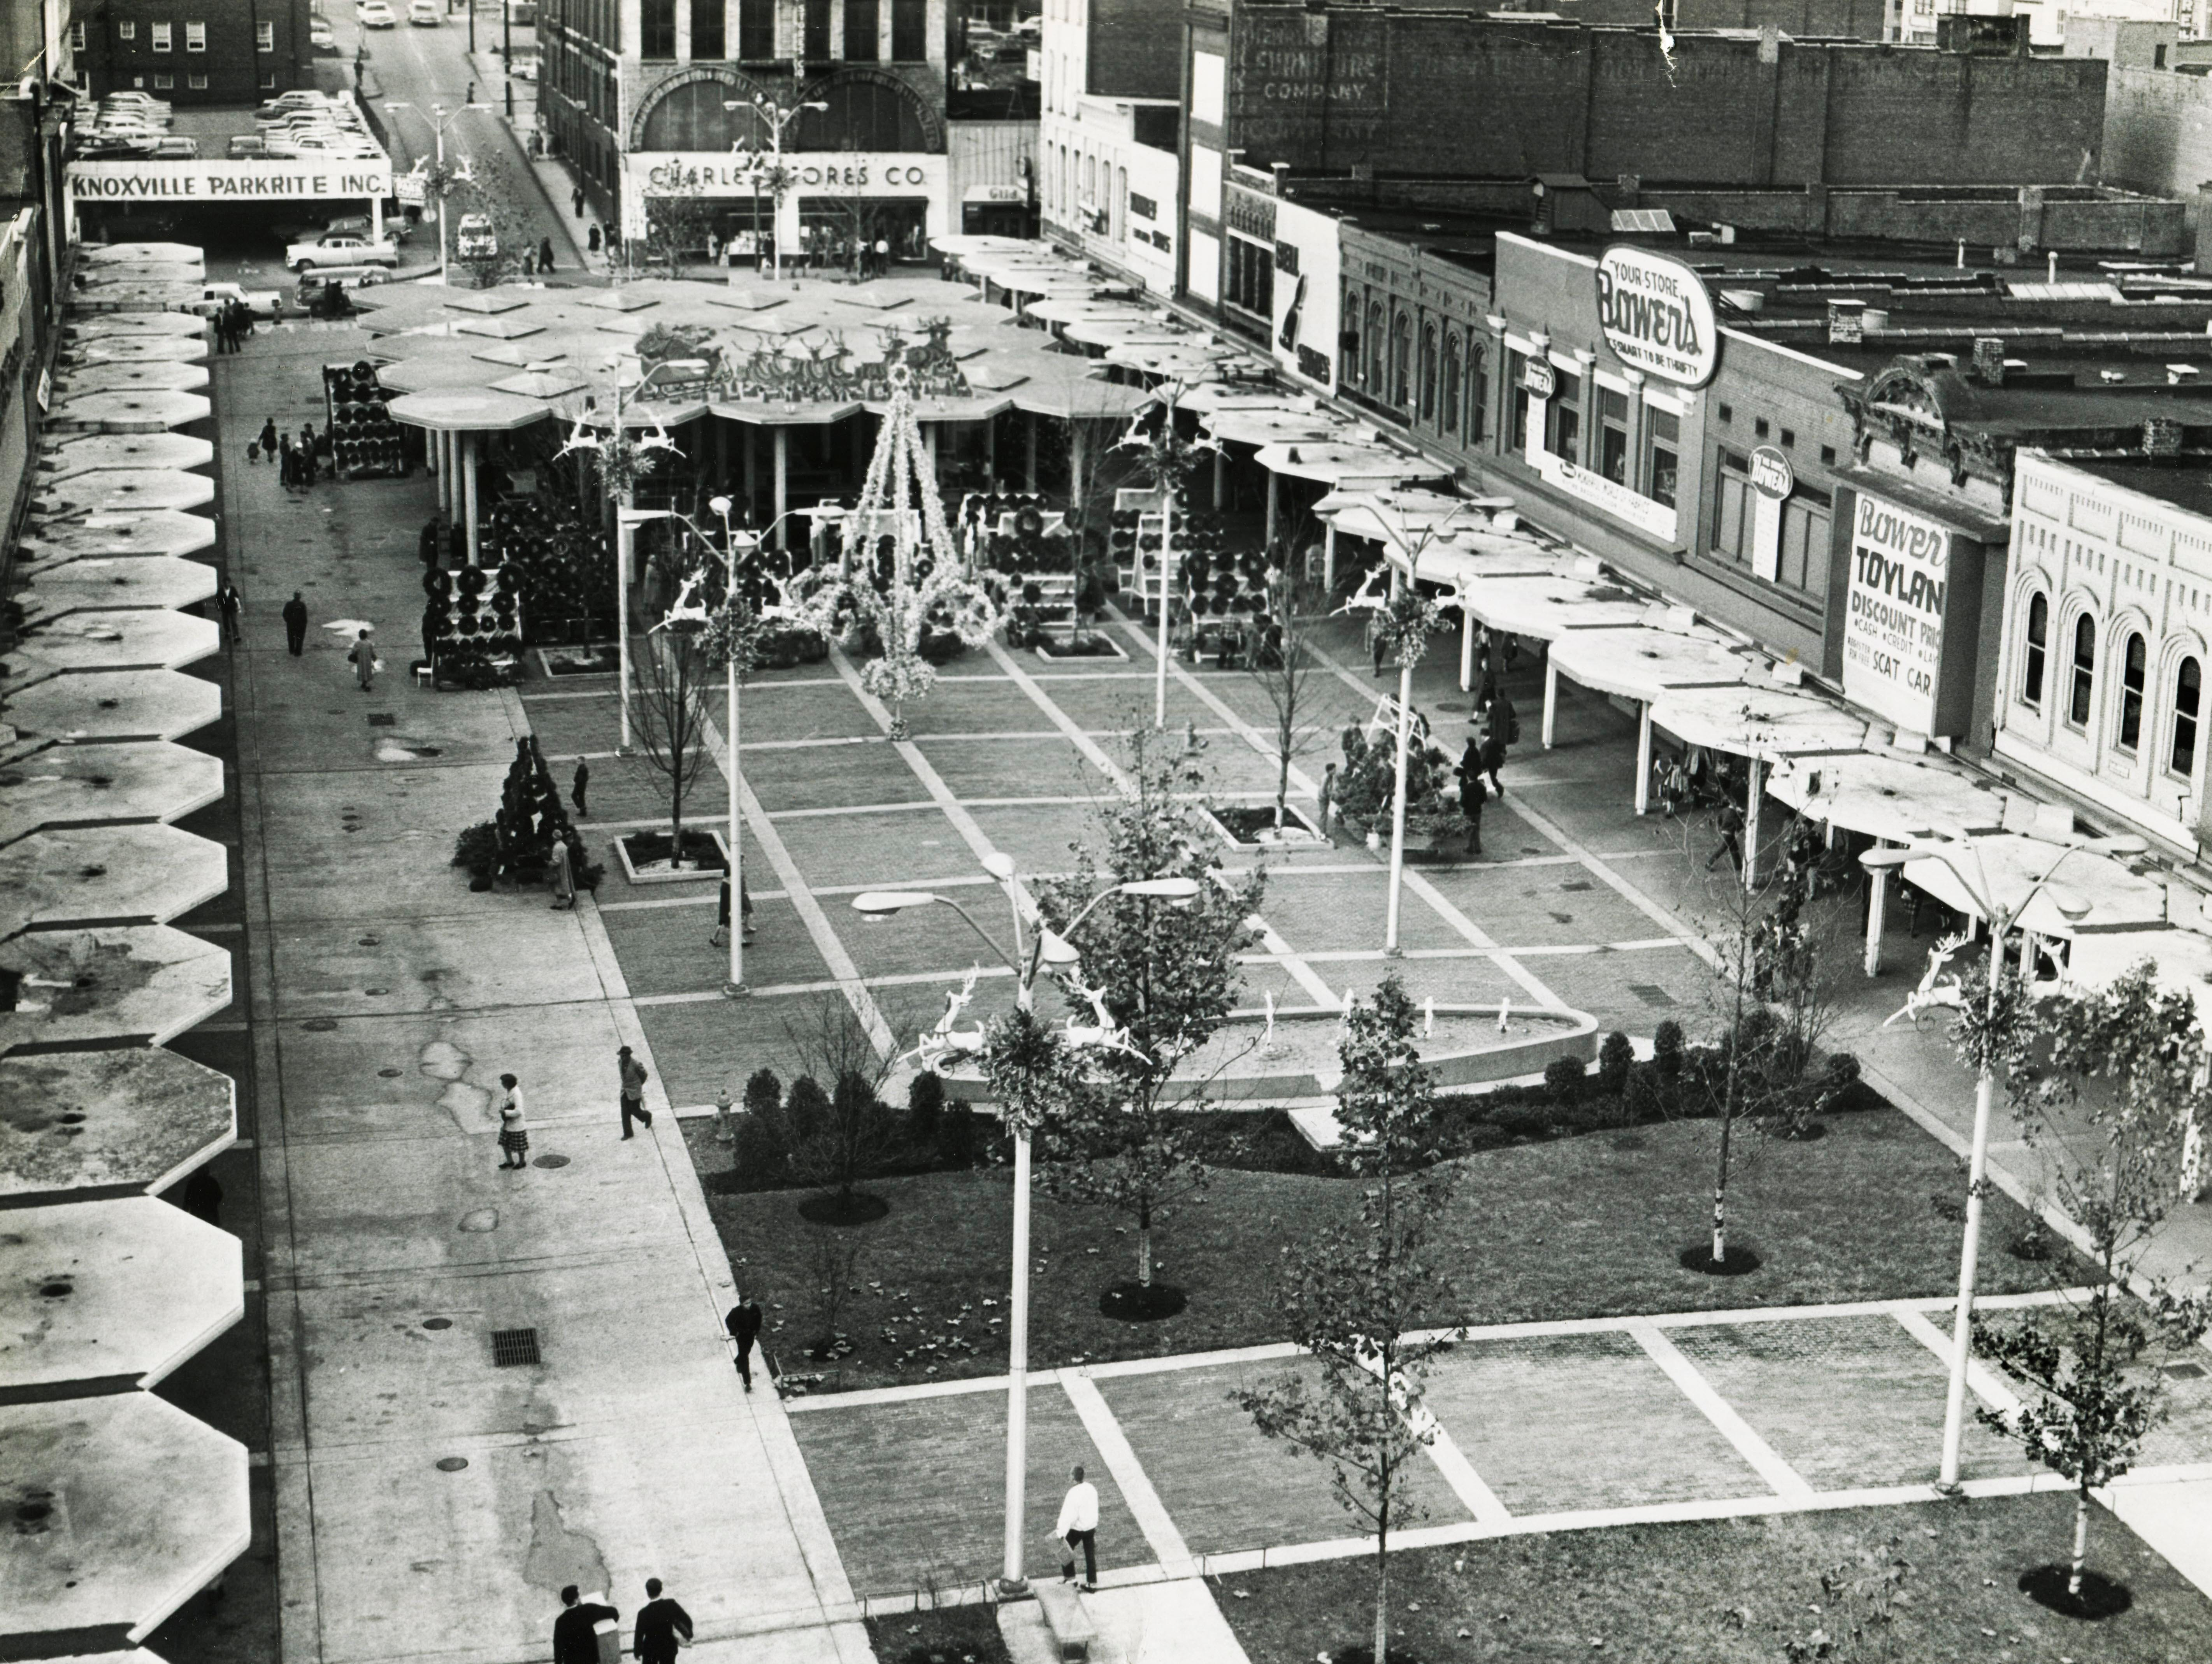 Market Square is pictured Dec. 23, 1962. (NEWS SENTINEL ARCHIVE)